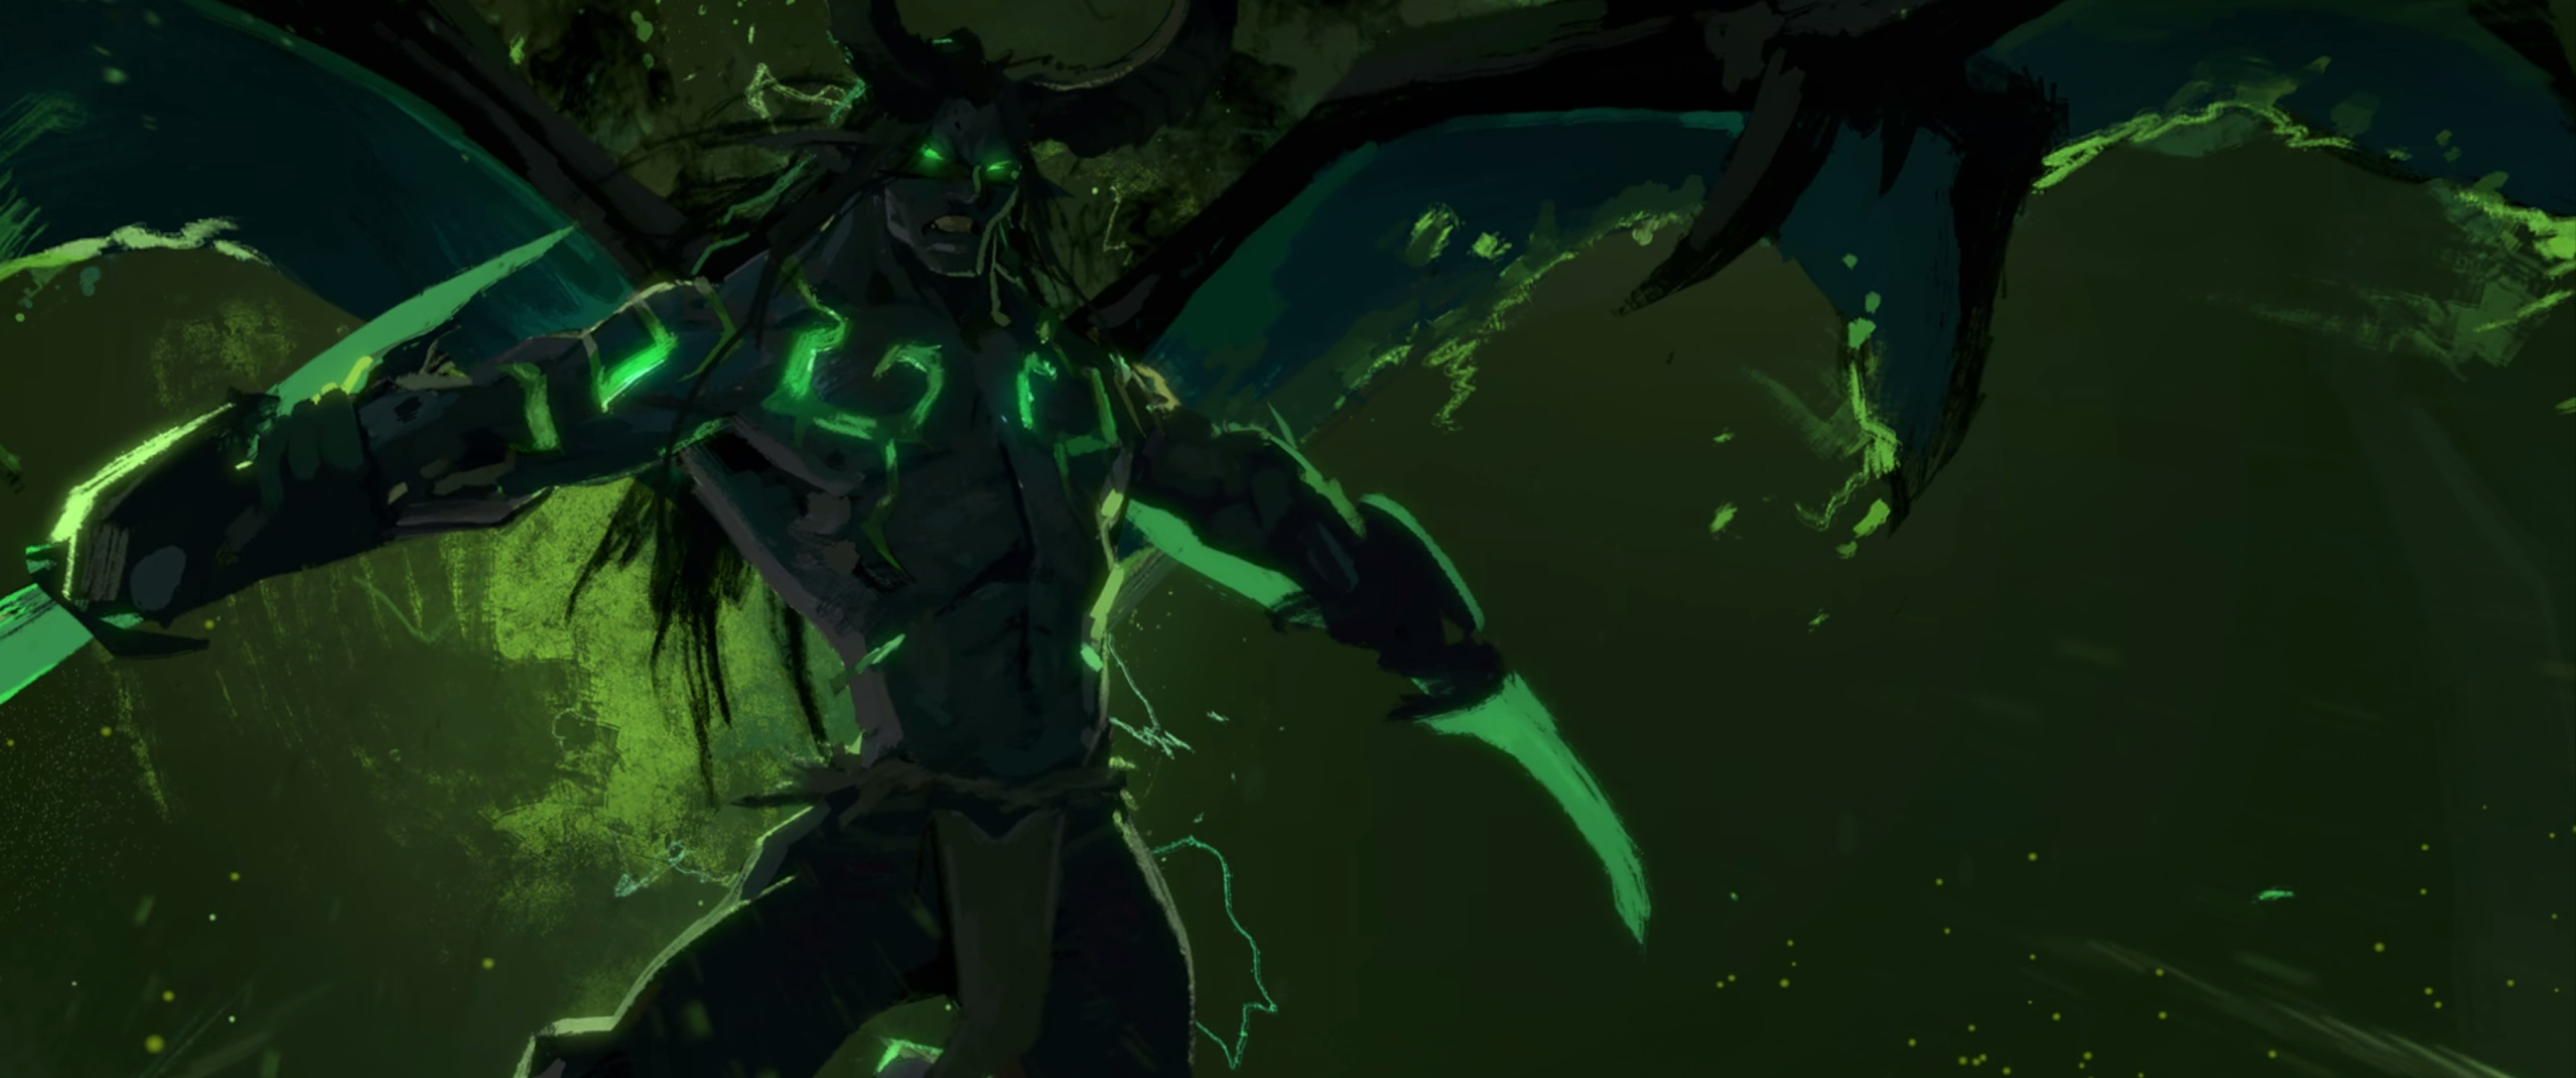 General 3440x1440 World of Warcraft Blizzard Entertainment Demon Hunter Illidan Stormrage